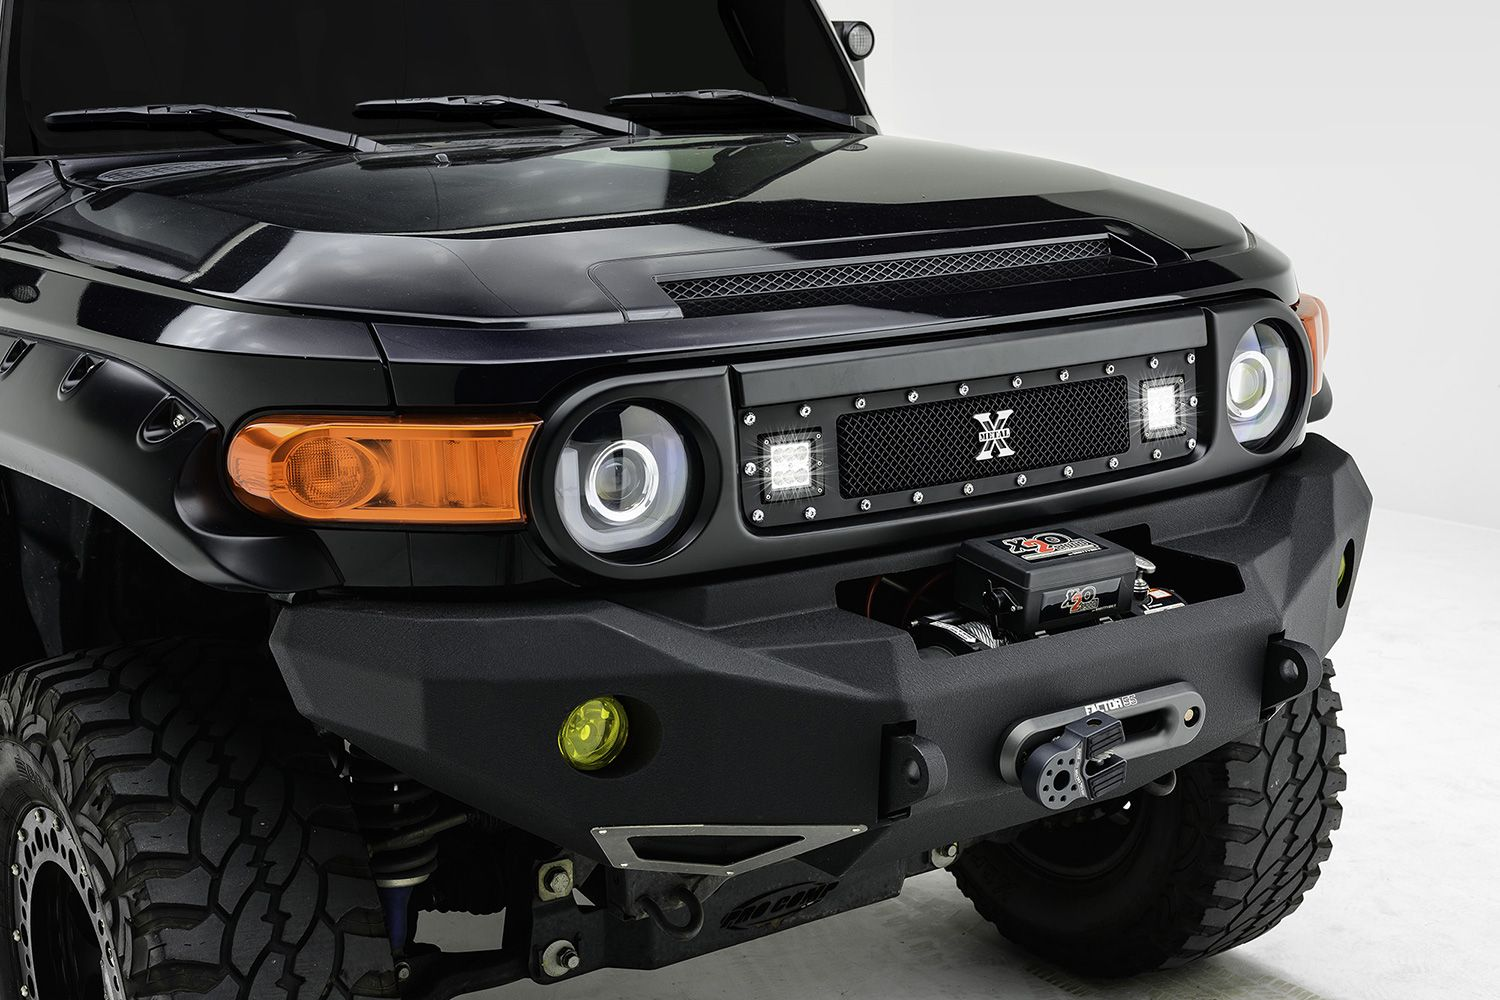 T rex 1 pc torch series black formed mesh grille with 2 x 3 led t rex 1 pc torch series black formed mesh grille with 2 x 3 led light cubes voltagebd Choice Image